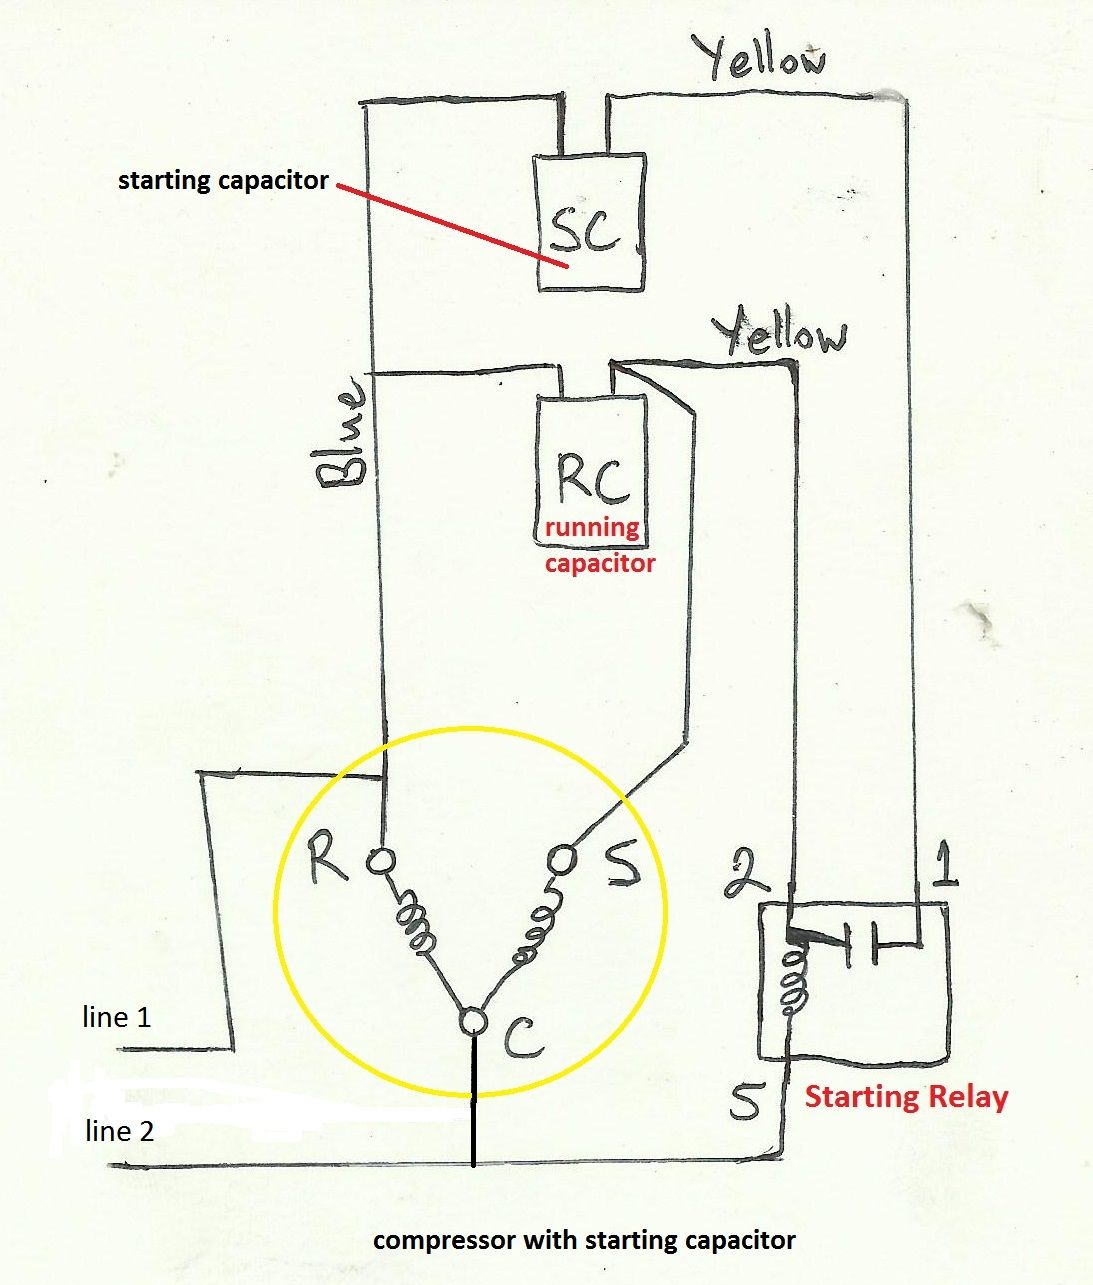 50528d800da7d87408a55b396c2aa5e6 ac compressor wiring diagram 2008 honda civic ac wiring diagram single phase refrigeration compressor wiring diagram at soozxer.org